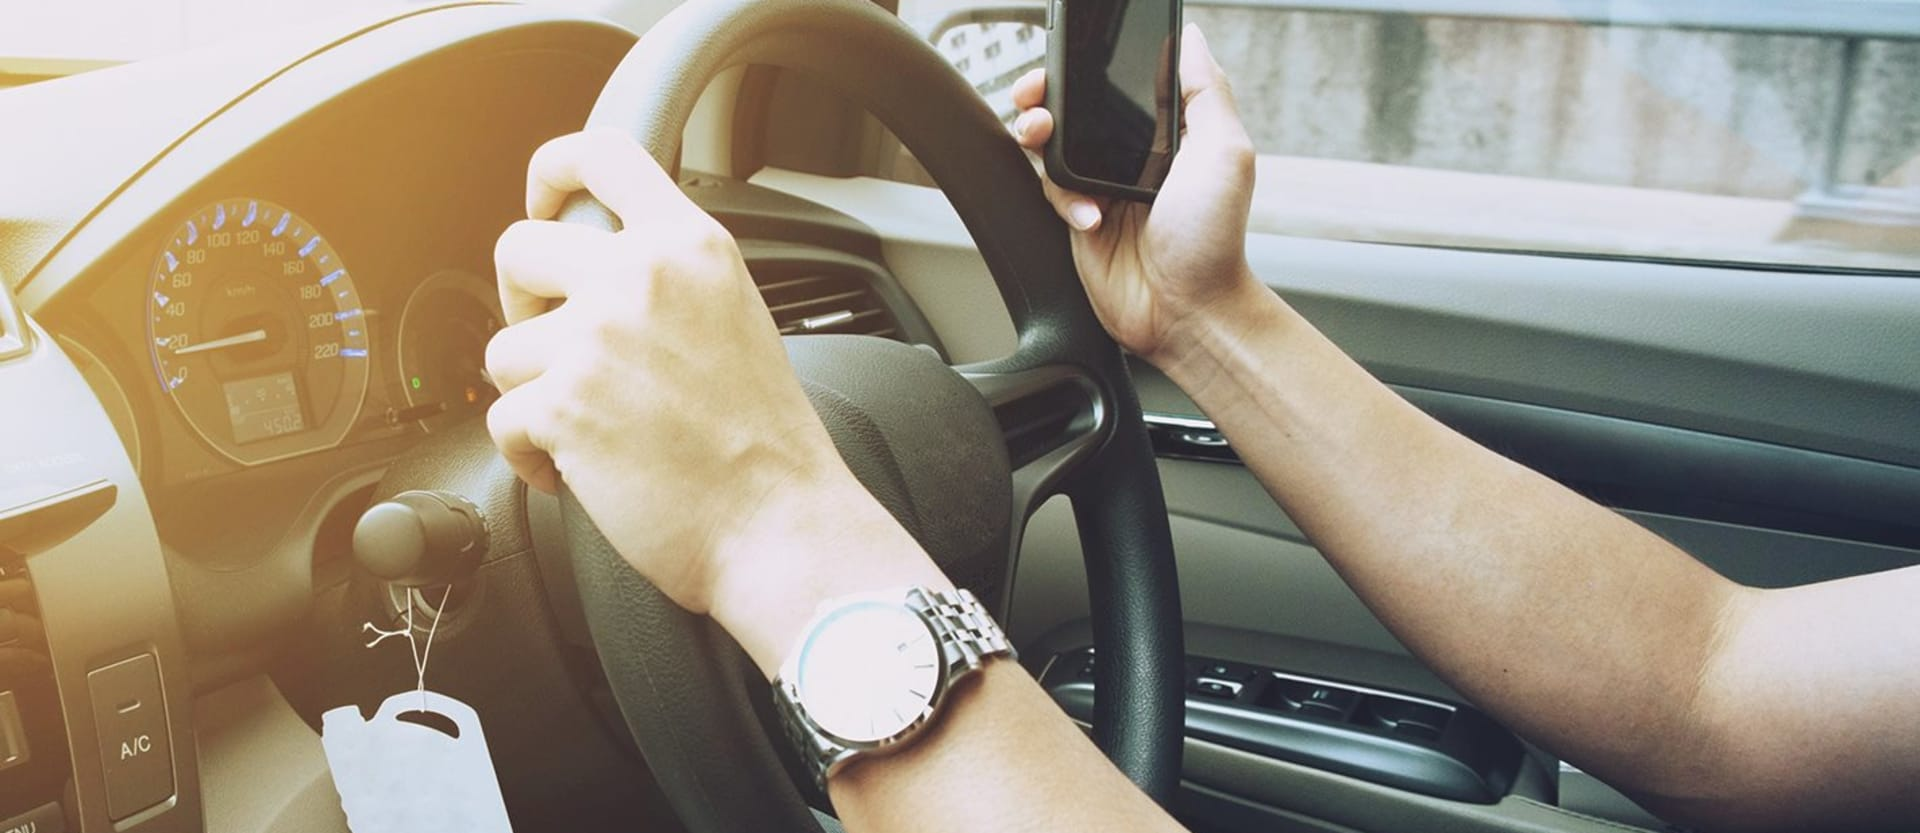 Apple adds Distracted driving software to iPhone_main